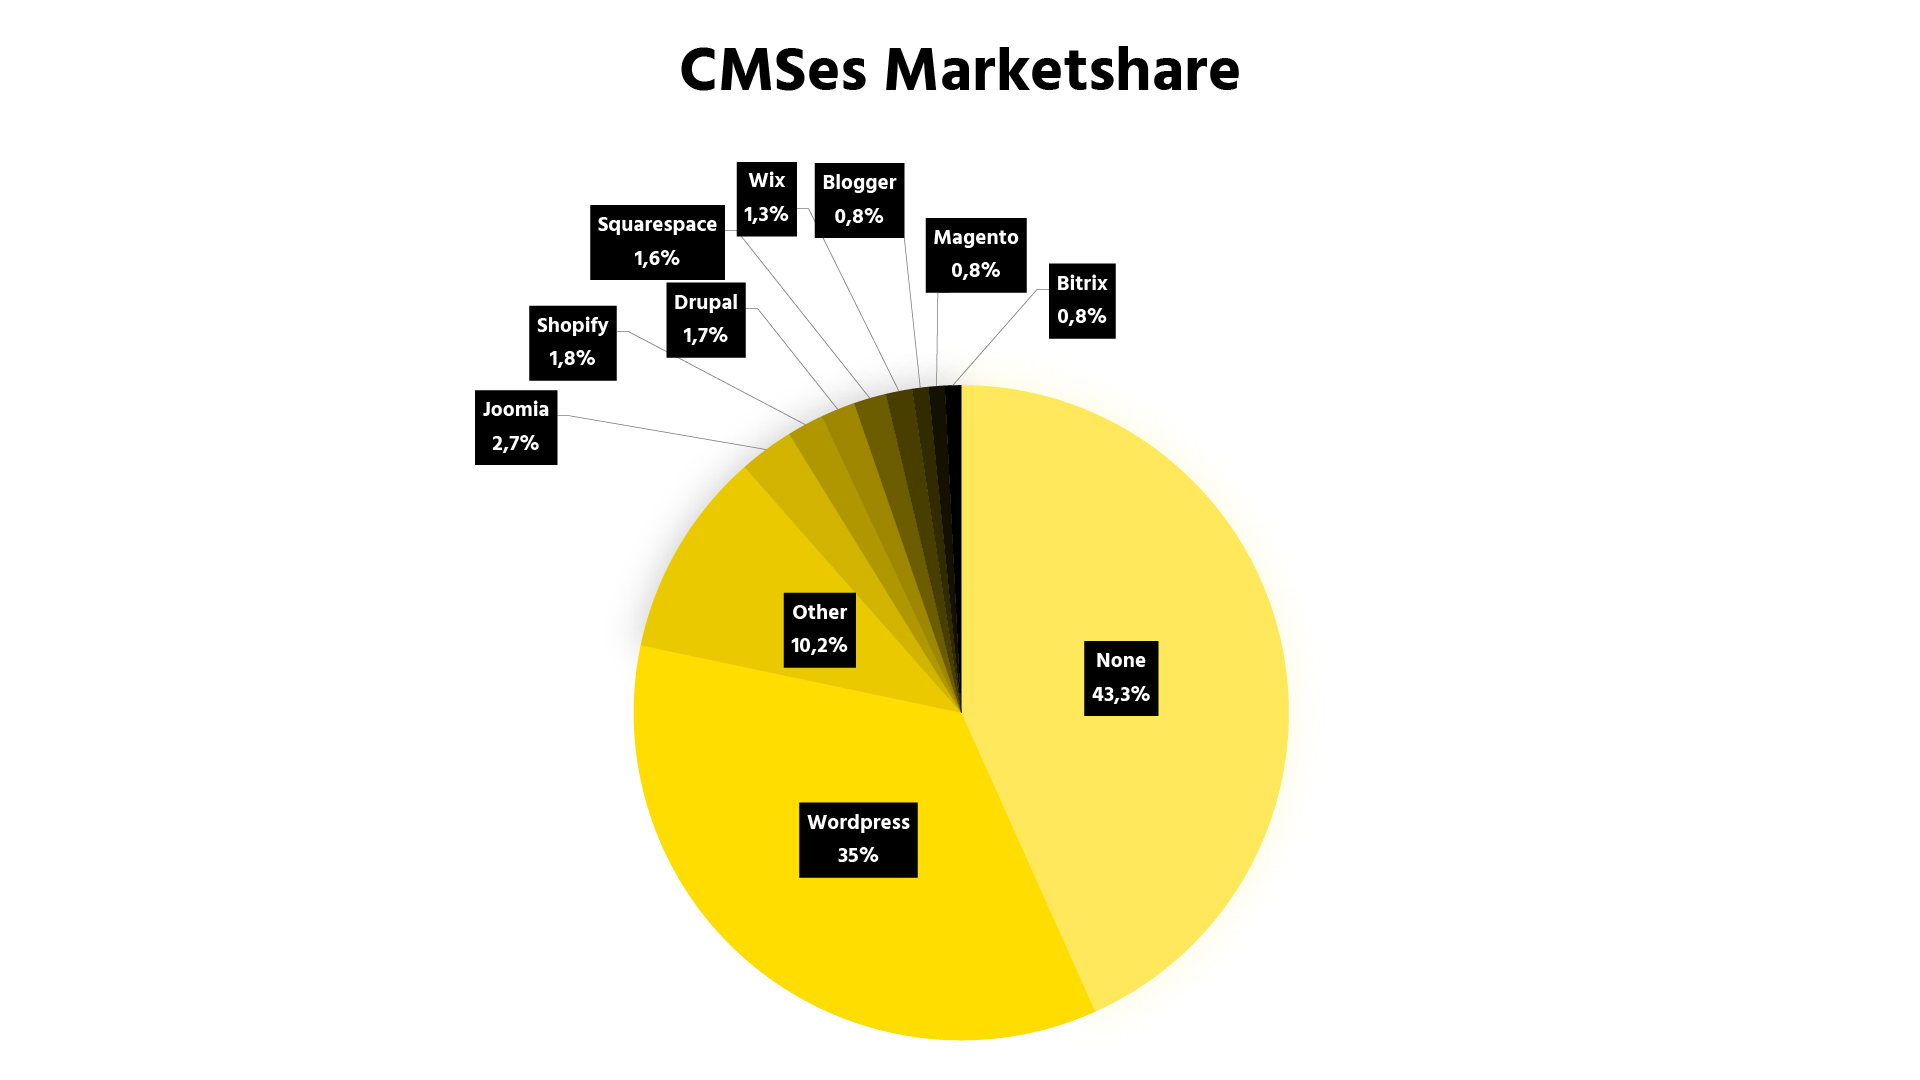 Graph showing the Marketshare of different CMS systems